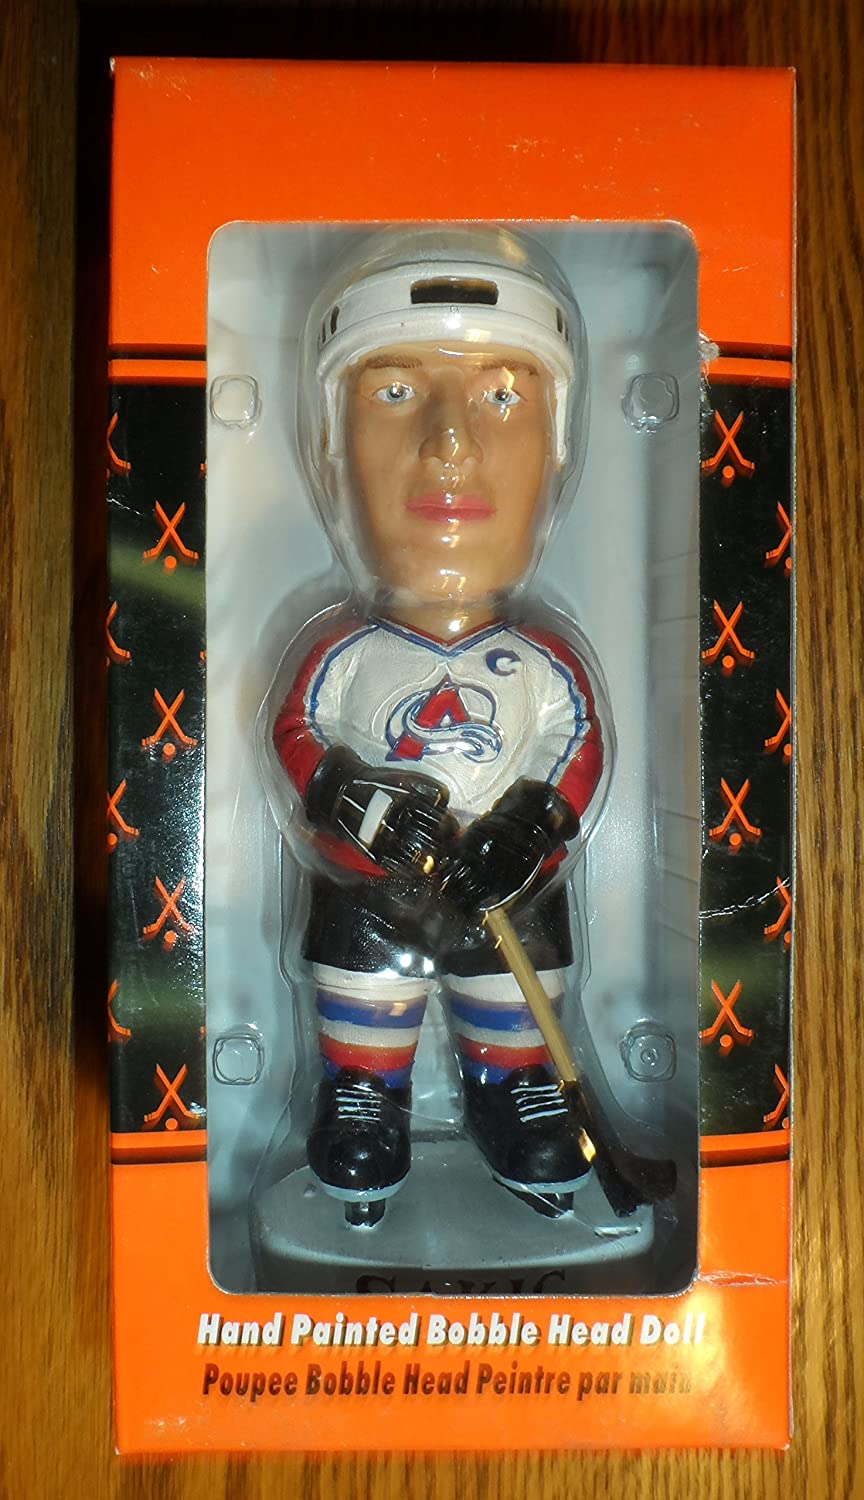 ... Bobble Dobbles Joe Sakic Colorado Avalanche Bobblehead - White Jersey  at Amazons Sports Collectibles Store ... efa1f48af